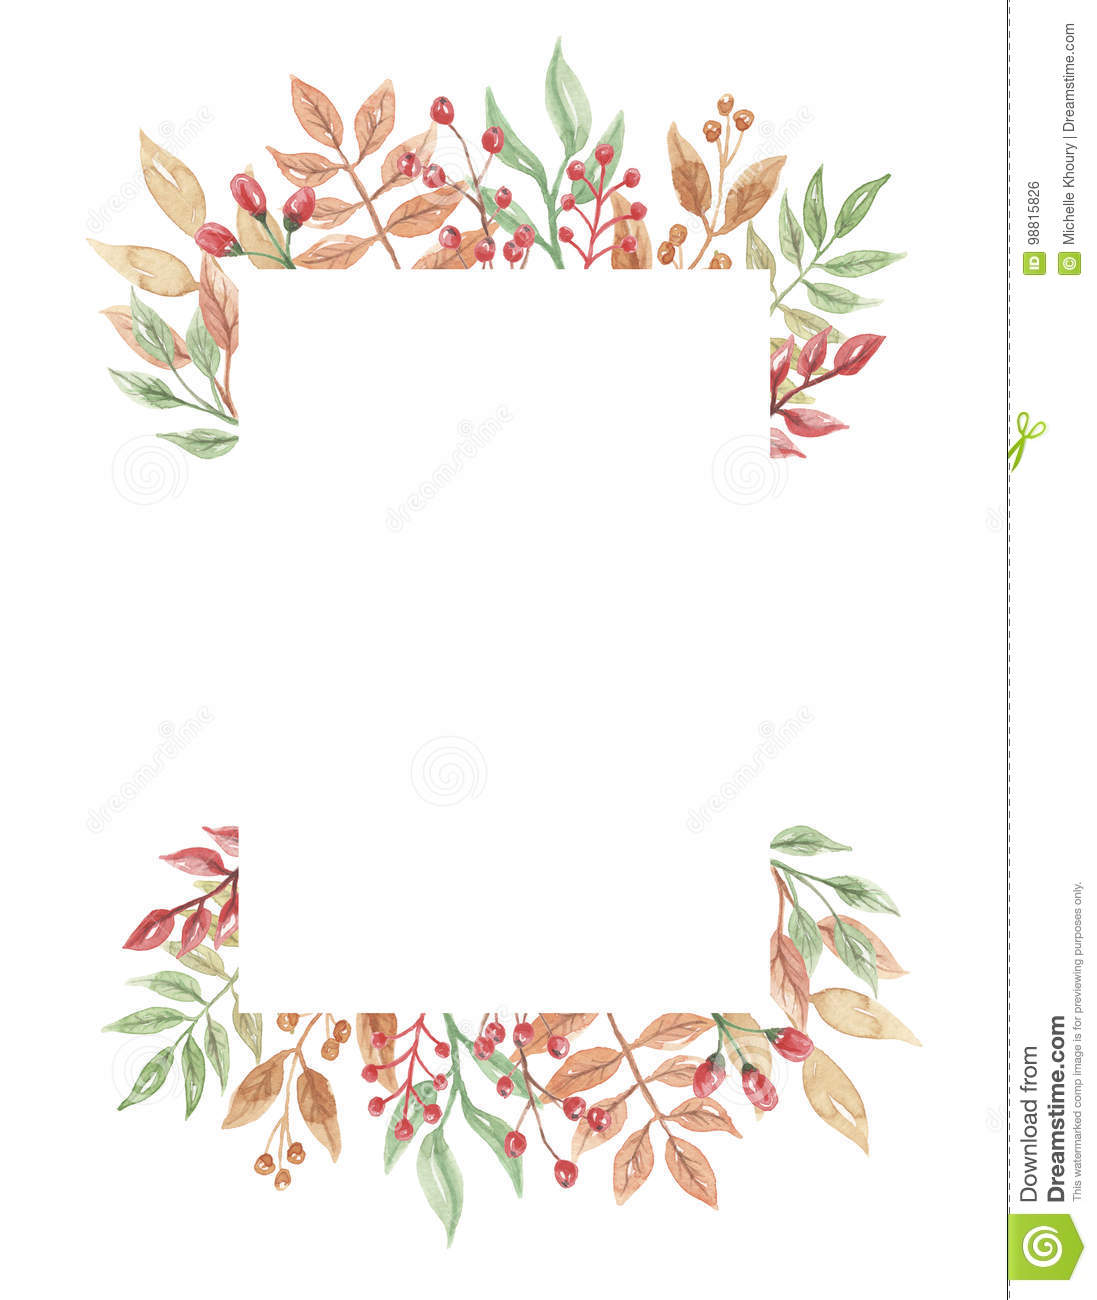 Watercolor Berries Frame Header Autumn Fall Leaves Flowers Berry